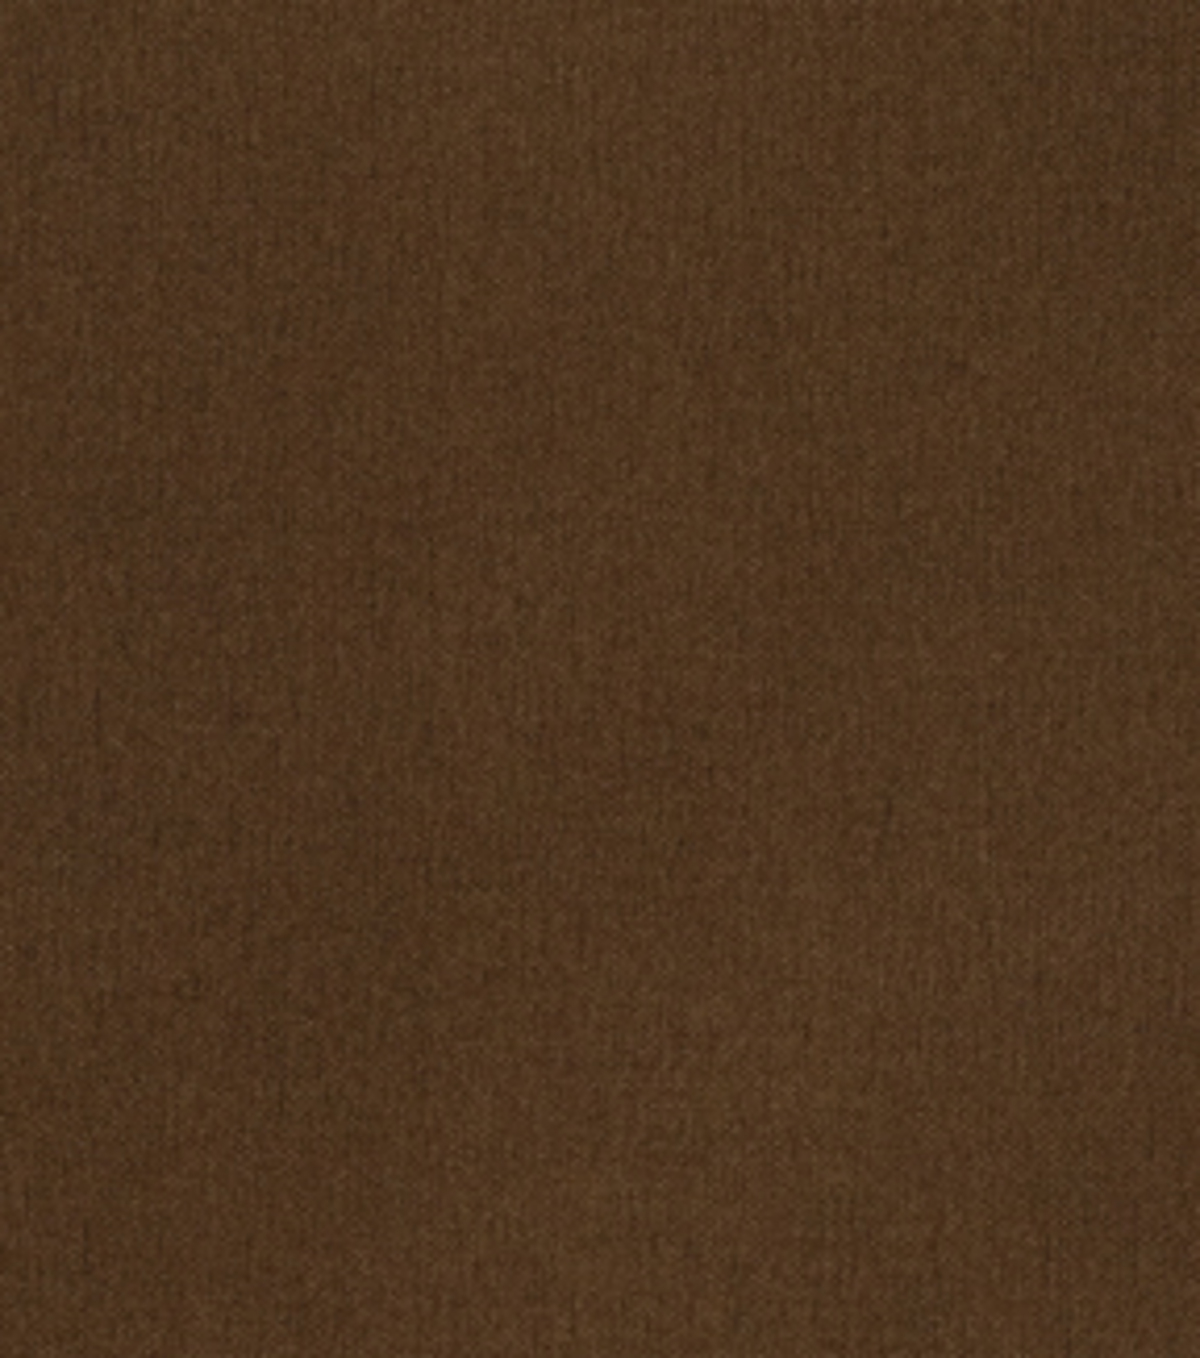 Home Decor 8\u0022x8\u0022 Fabric Swatch-Signature Series Ultra Taffeta Wood